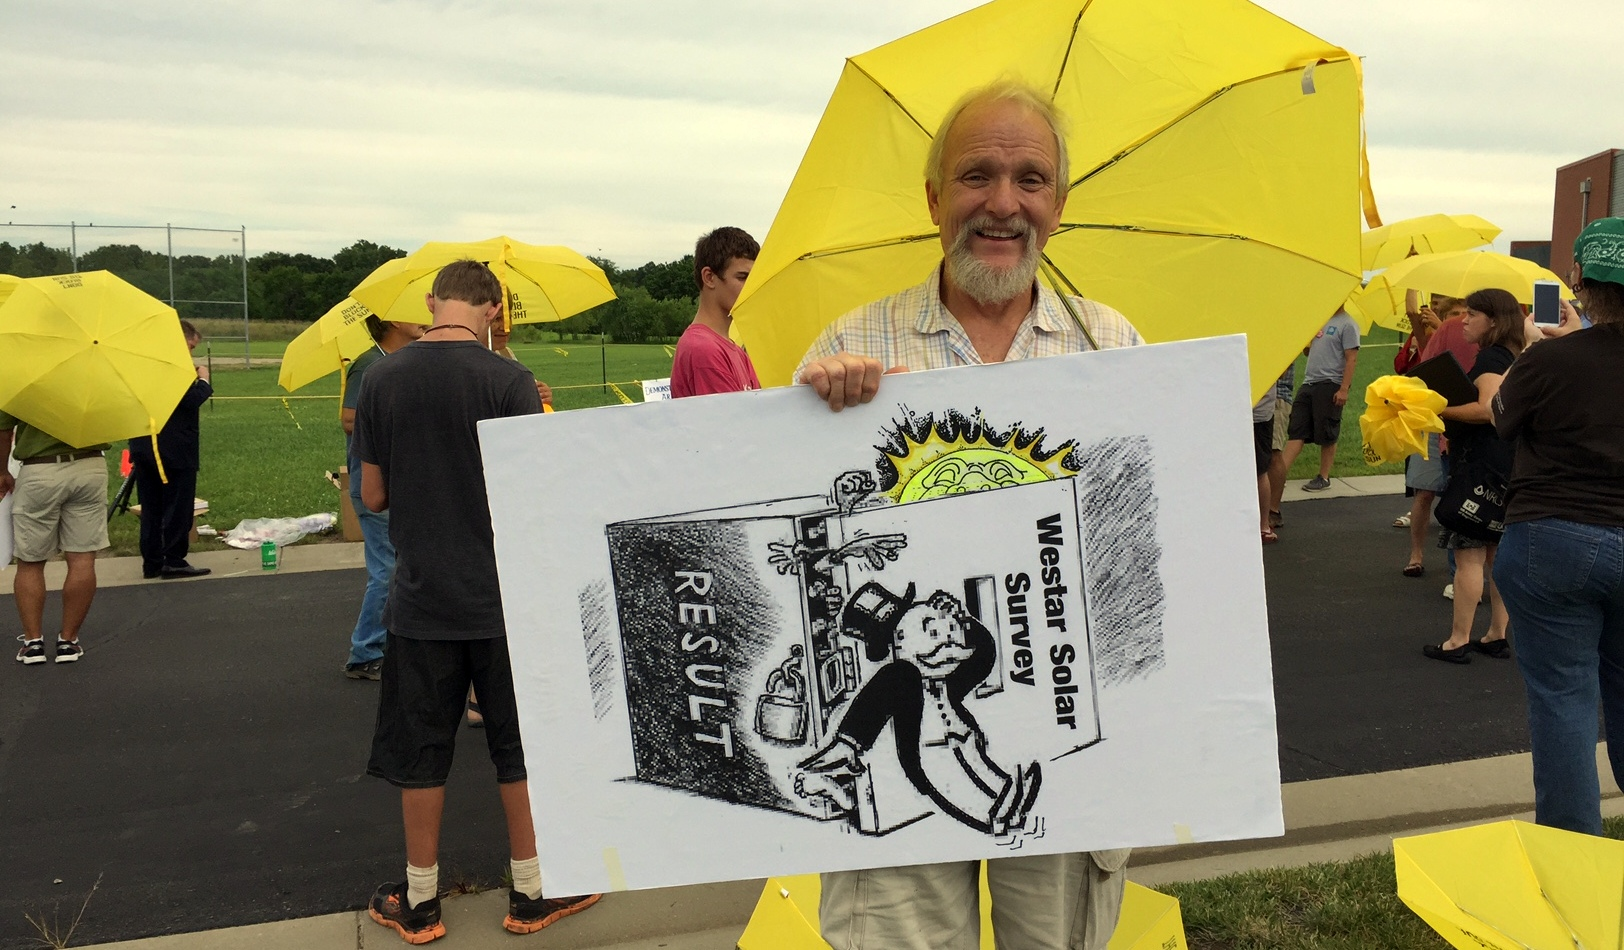 Bill Dorsett and other opponents of the Westar plan hold yellow umbrellas to show their support for solar power. (Photo by Stephen Koranda)